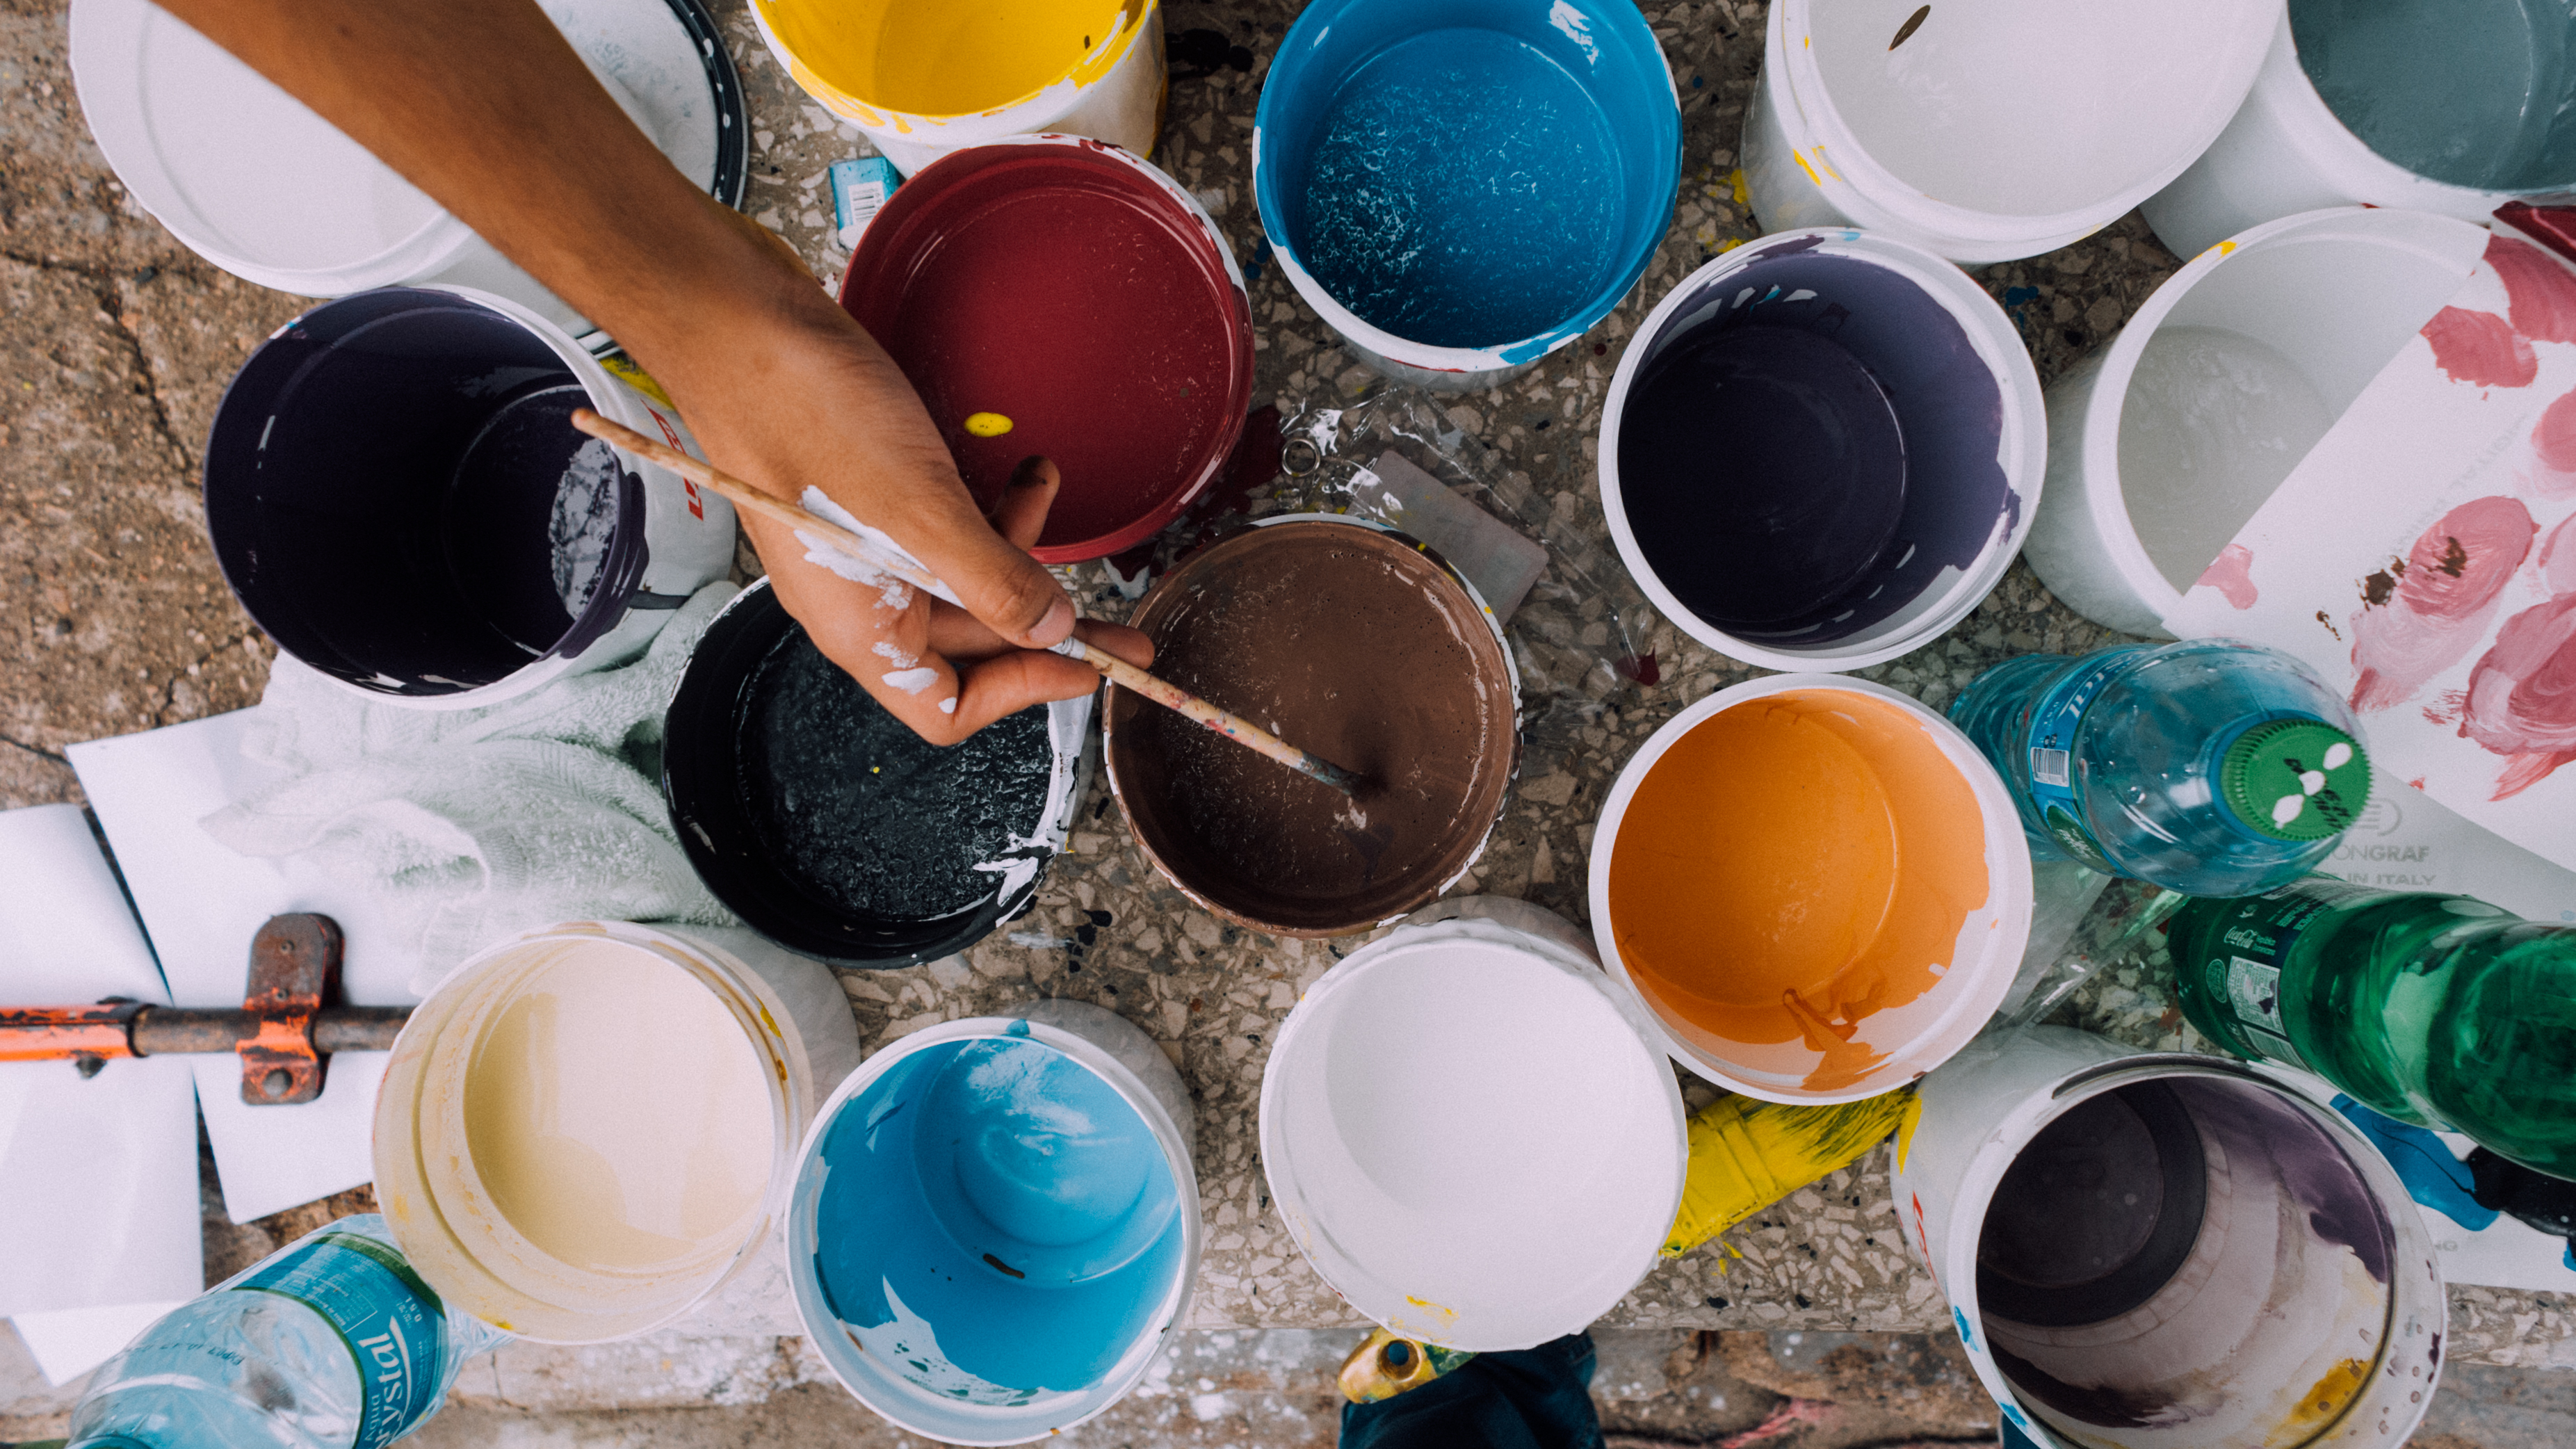 paint-brushes-and-pots-on-table